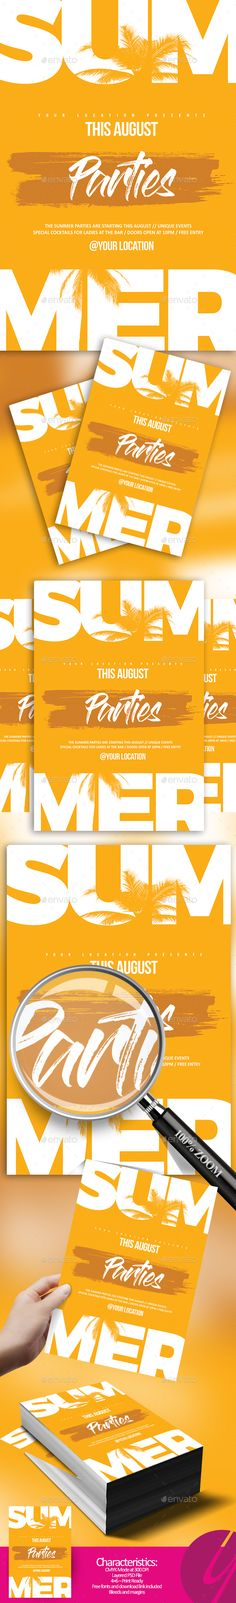 Minimalistic Summer #Flyer - Clubs & Parties Events Download here: https://graphicriver.net/item/minimalistic-summer-flyer/20158210?ref=alena994